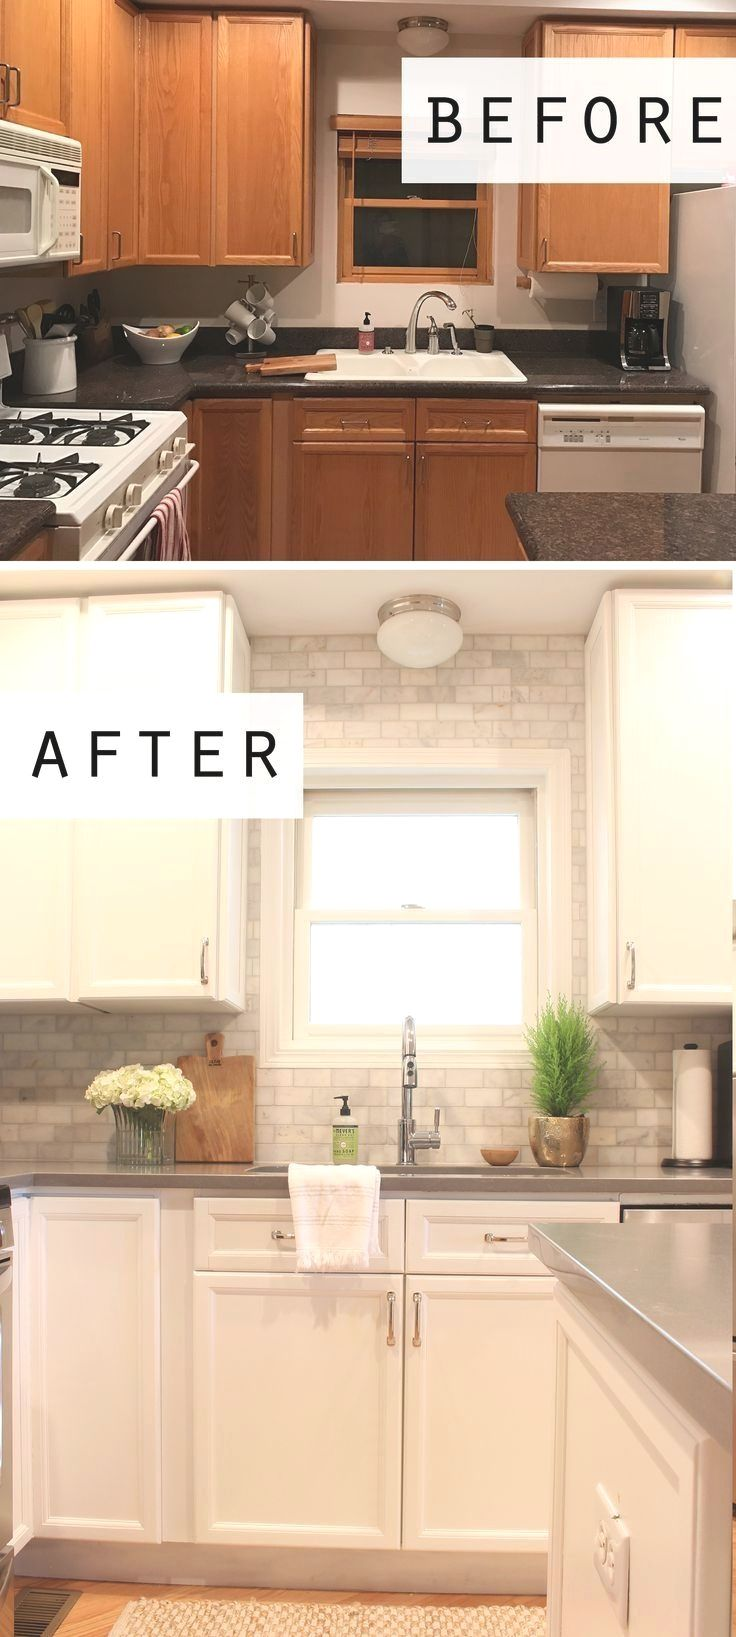 Cottage Style Before And After Kitchen Makeover Featuring